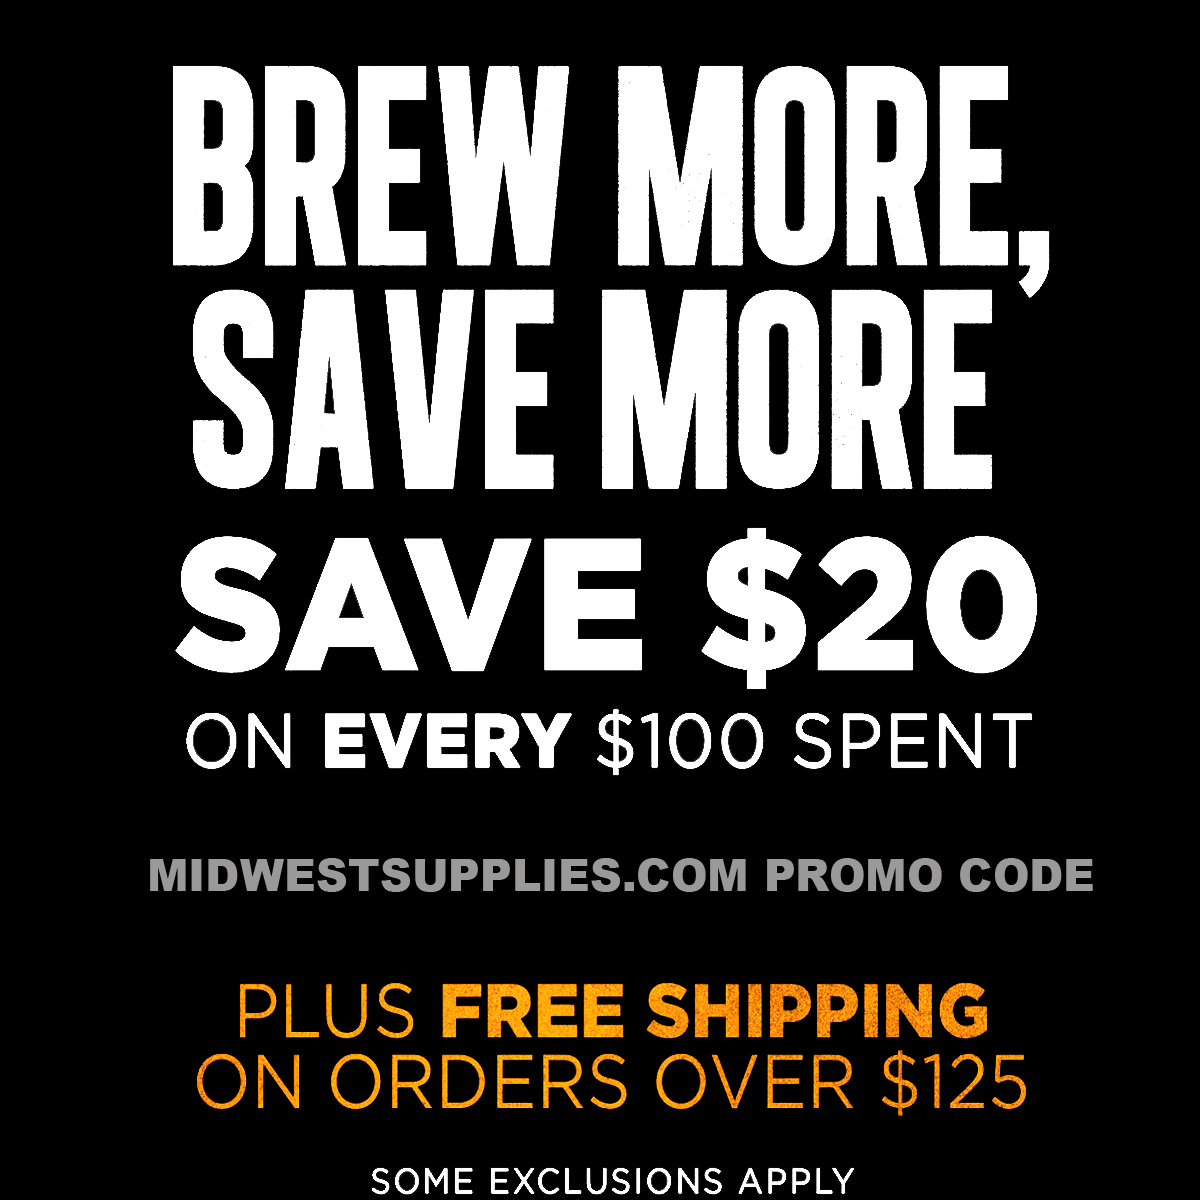 Midwest Supplies Save $20 on a $100 Purchase with this MidwestSupplies.com Promo Code Coupon Code